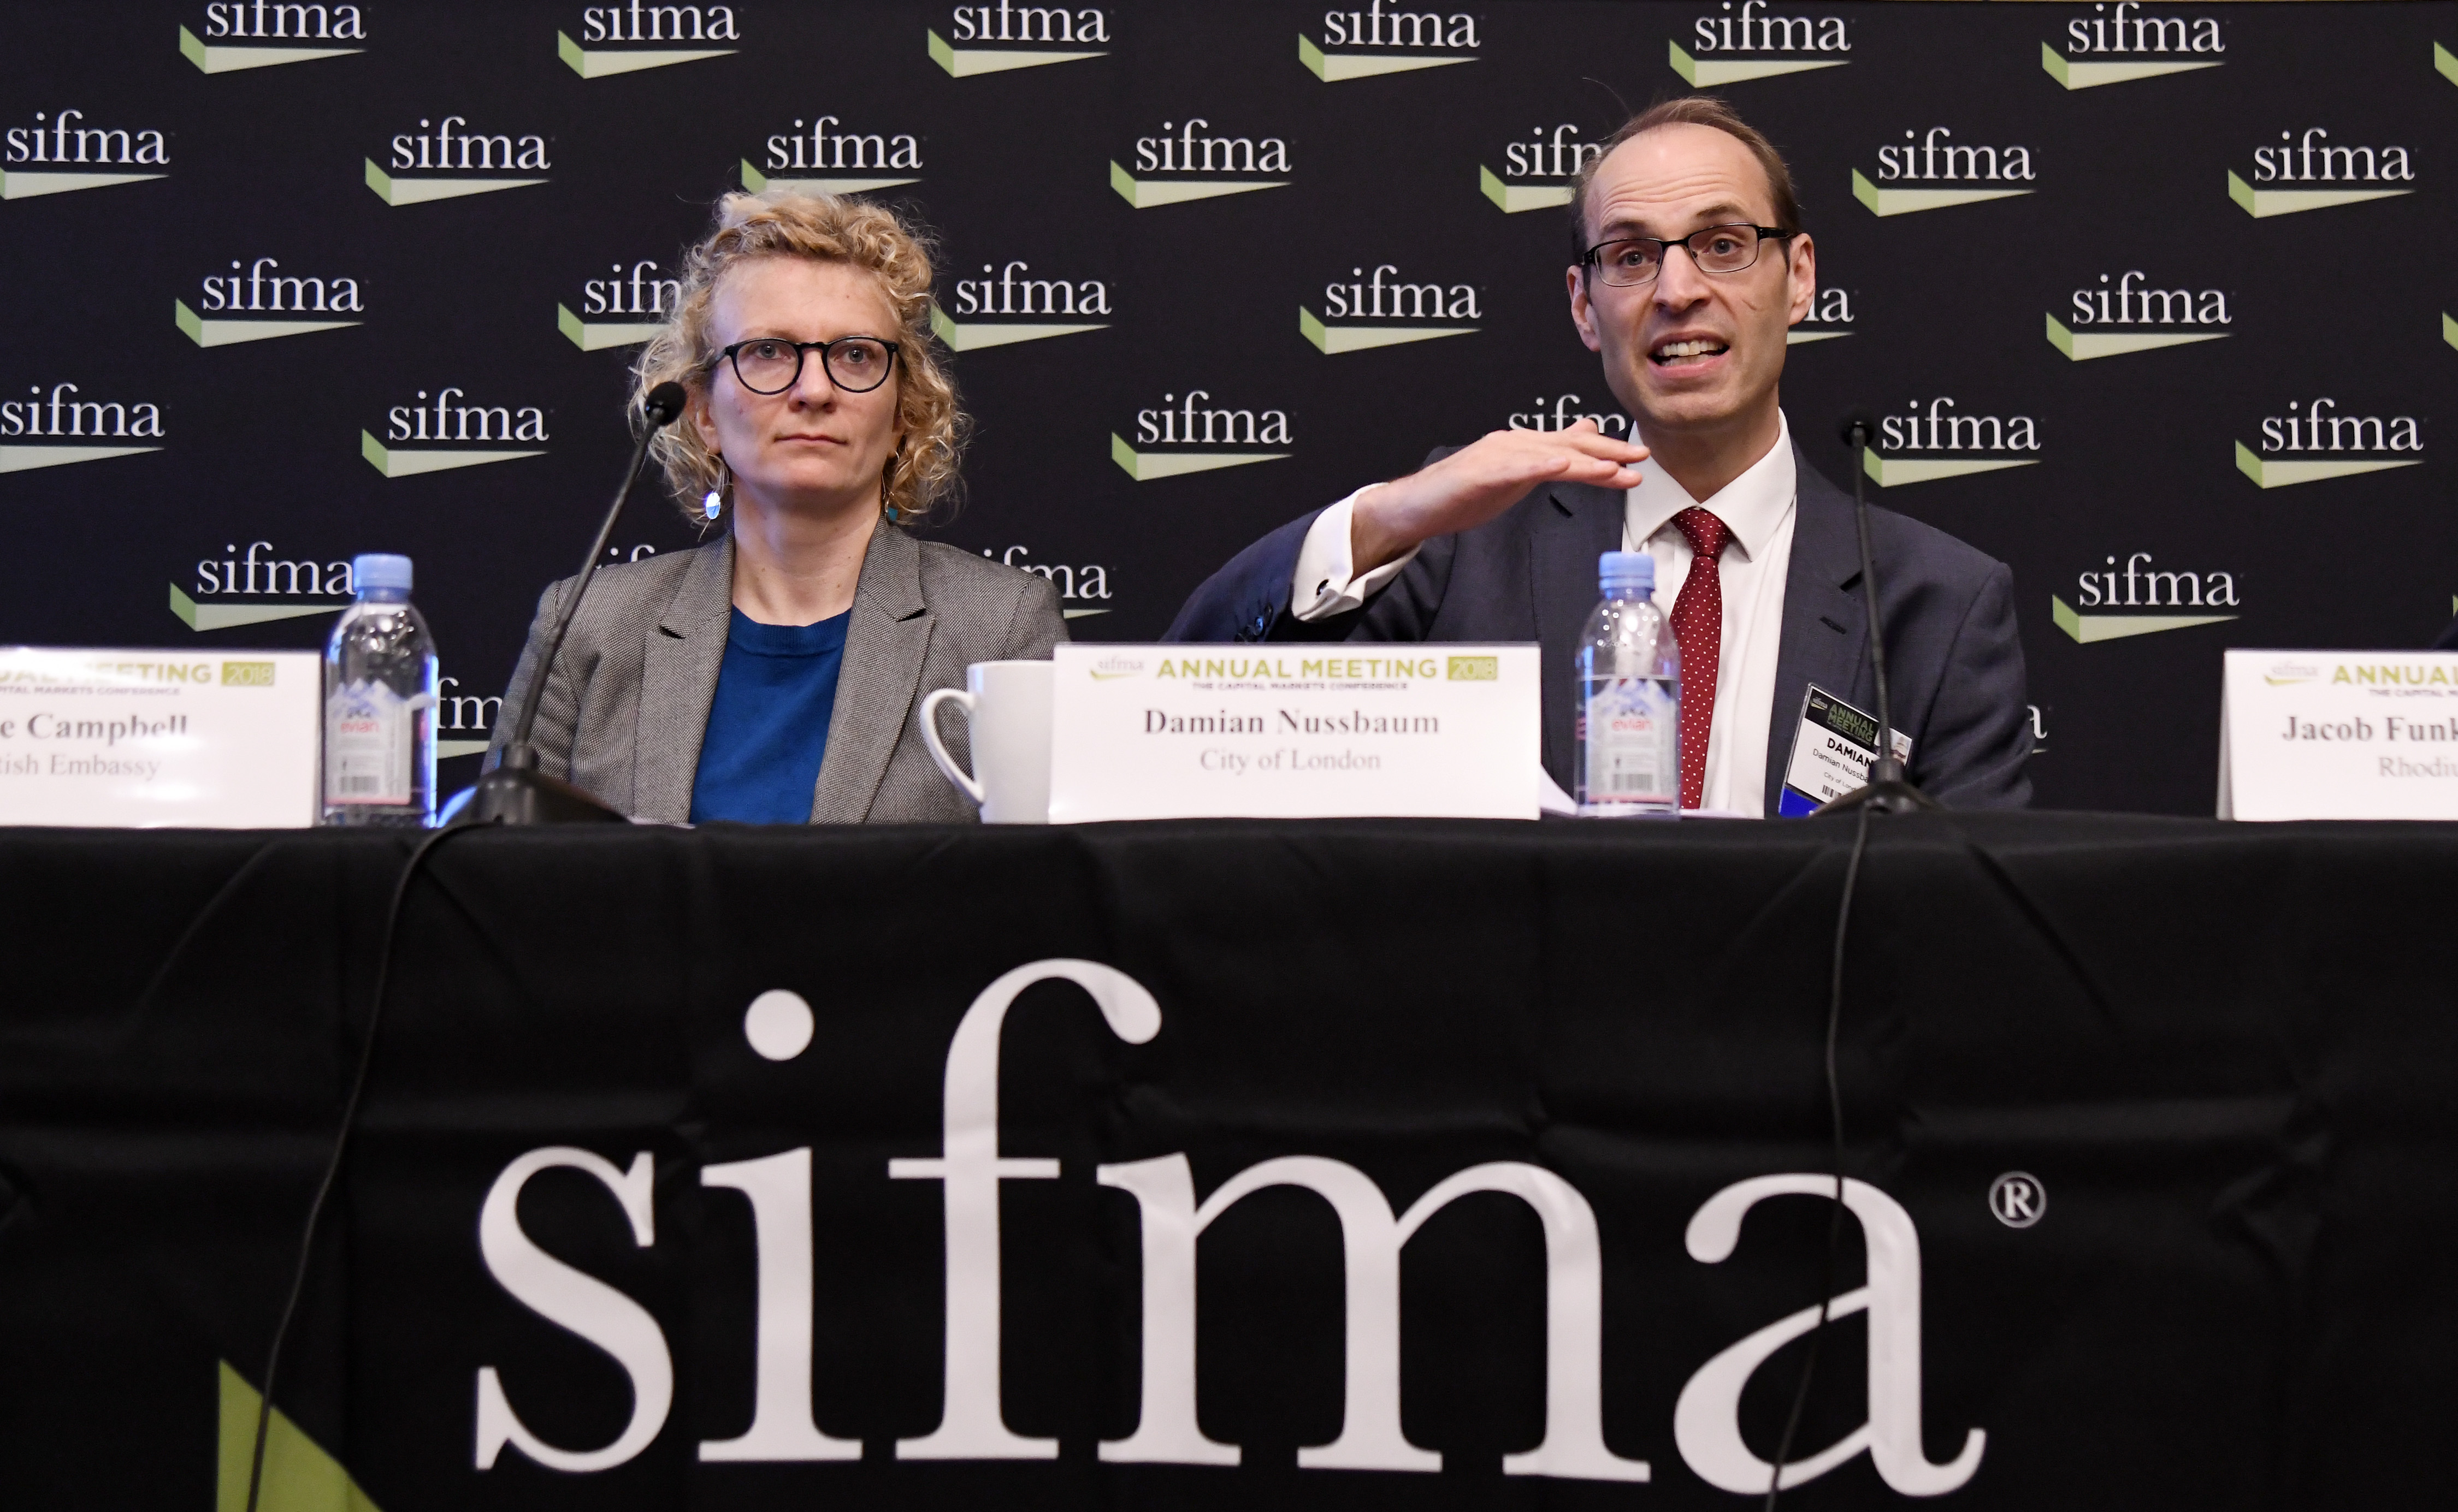 Damian Nussbaum, City of London - SIFMA's Brexit Briefing